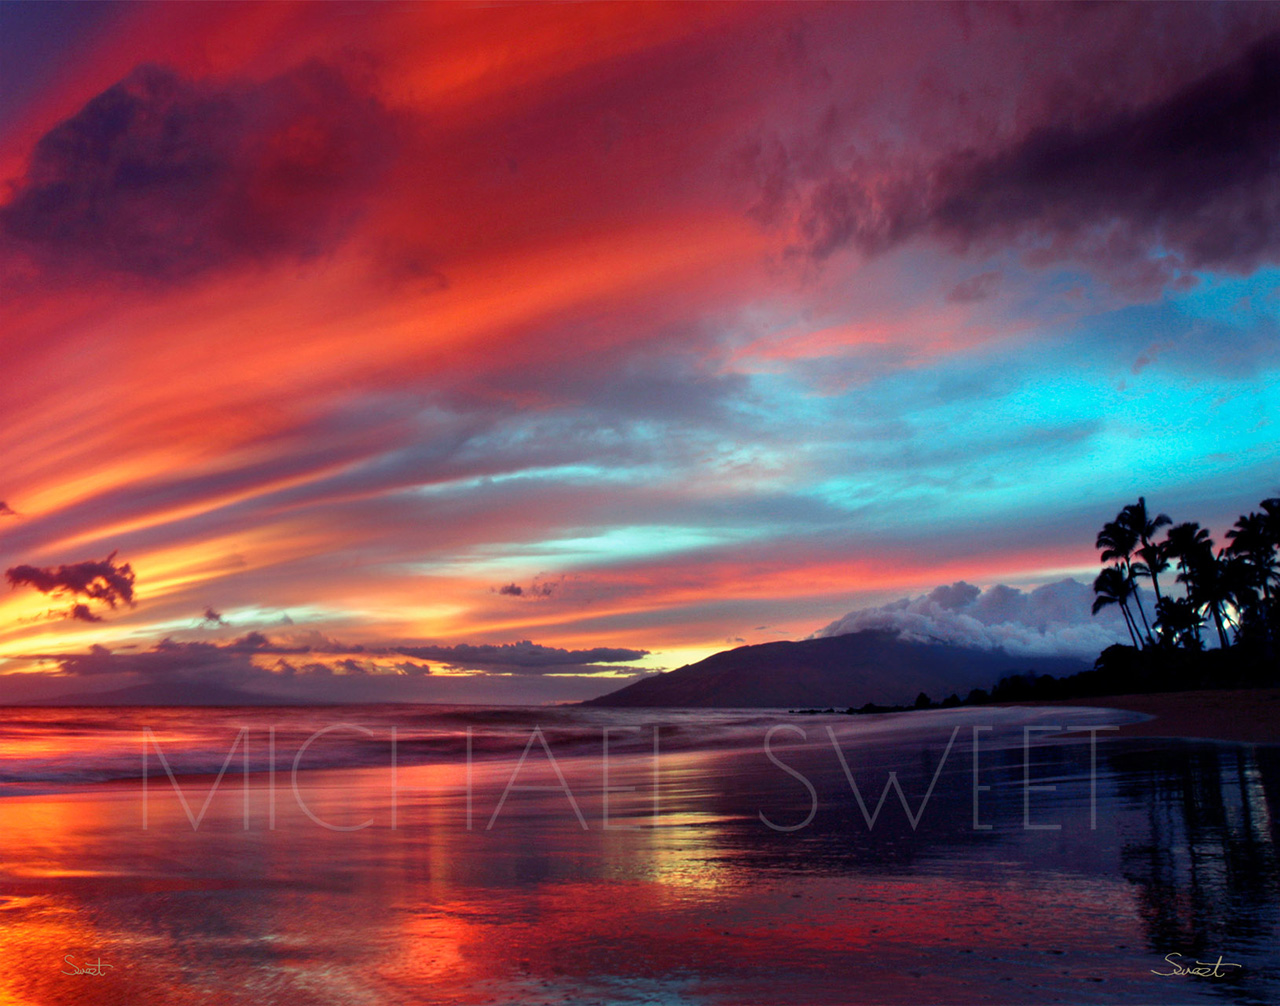 Photograph of sunset at a beach in Maui